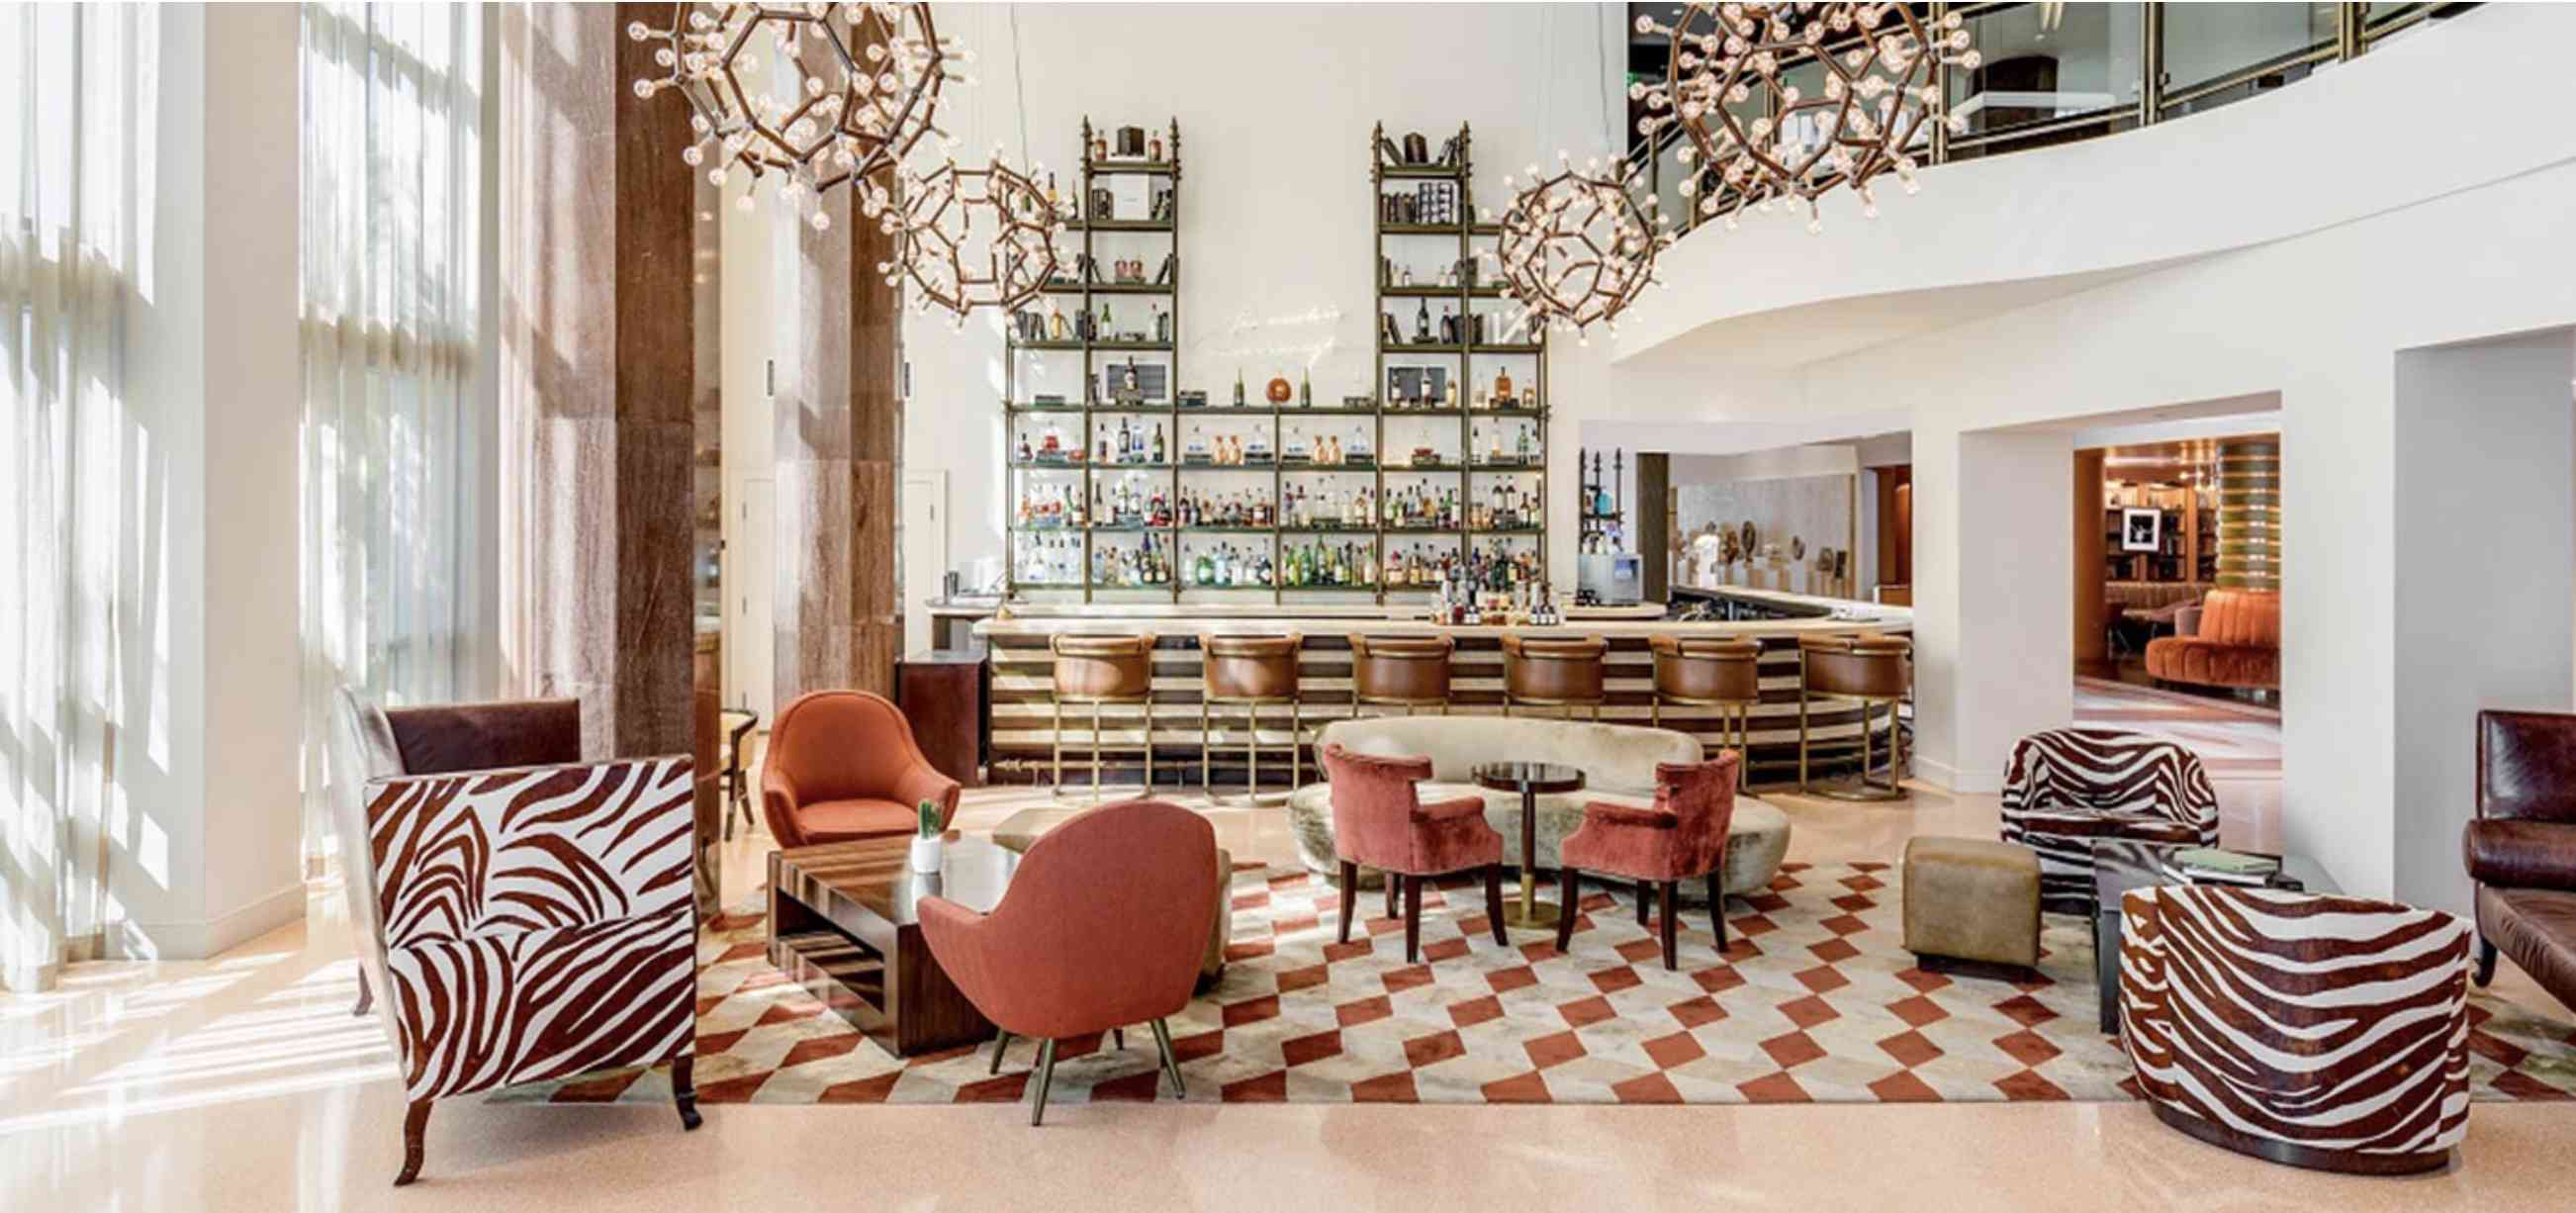 The art deco bar and lounge at Shelborne South Beach